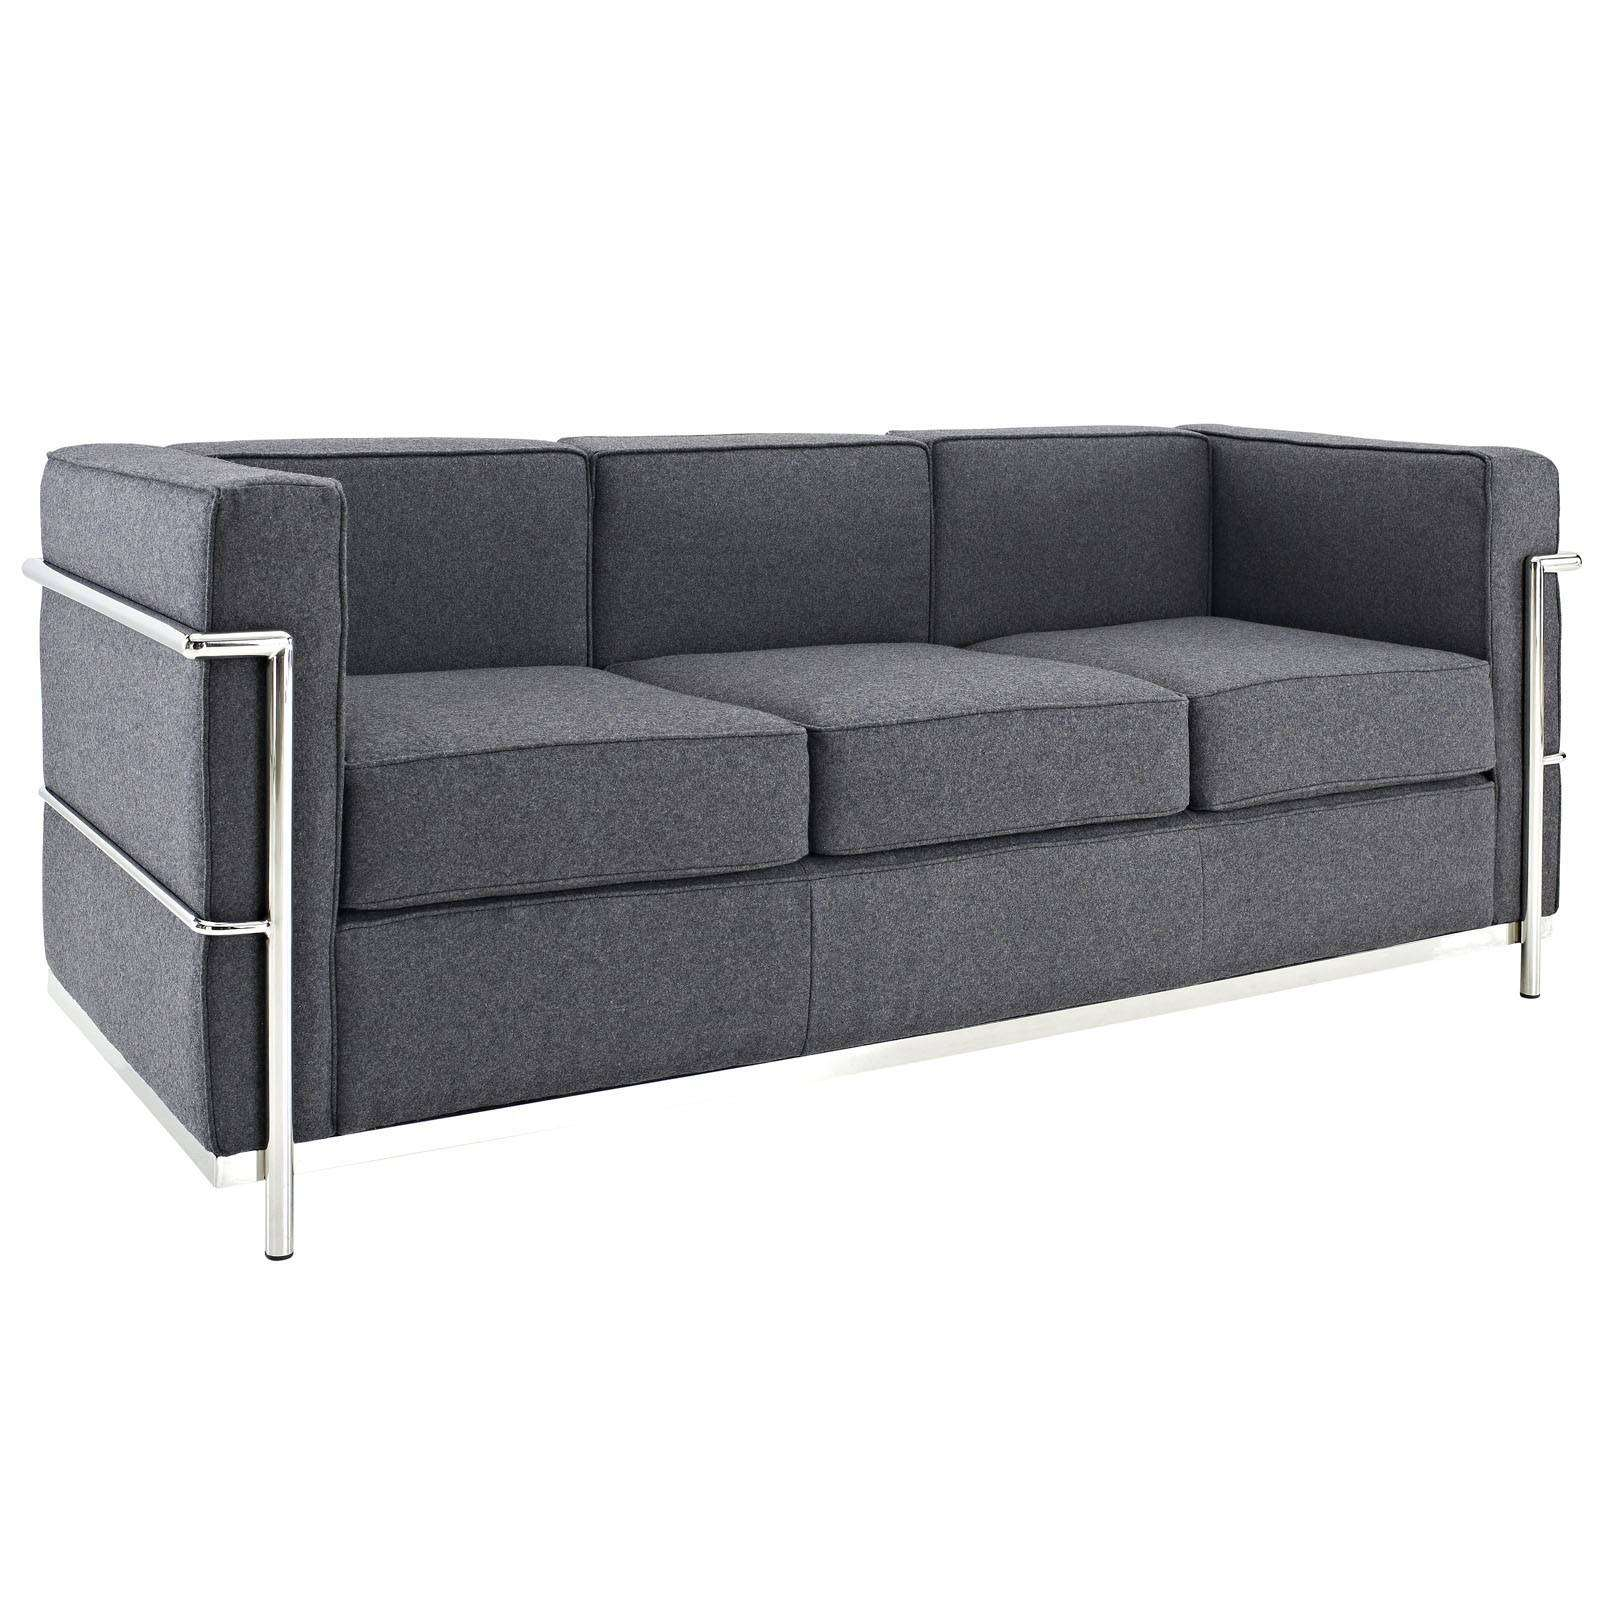 Le corbusier style lc2 sofa couch wool for Le corbusier sofa